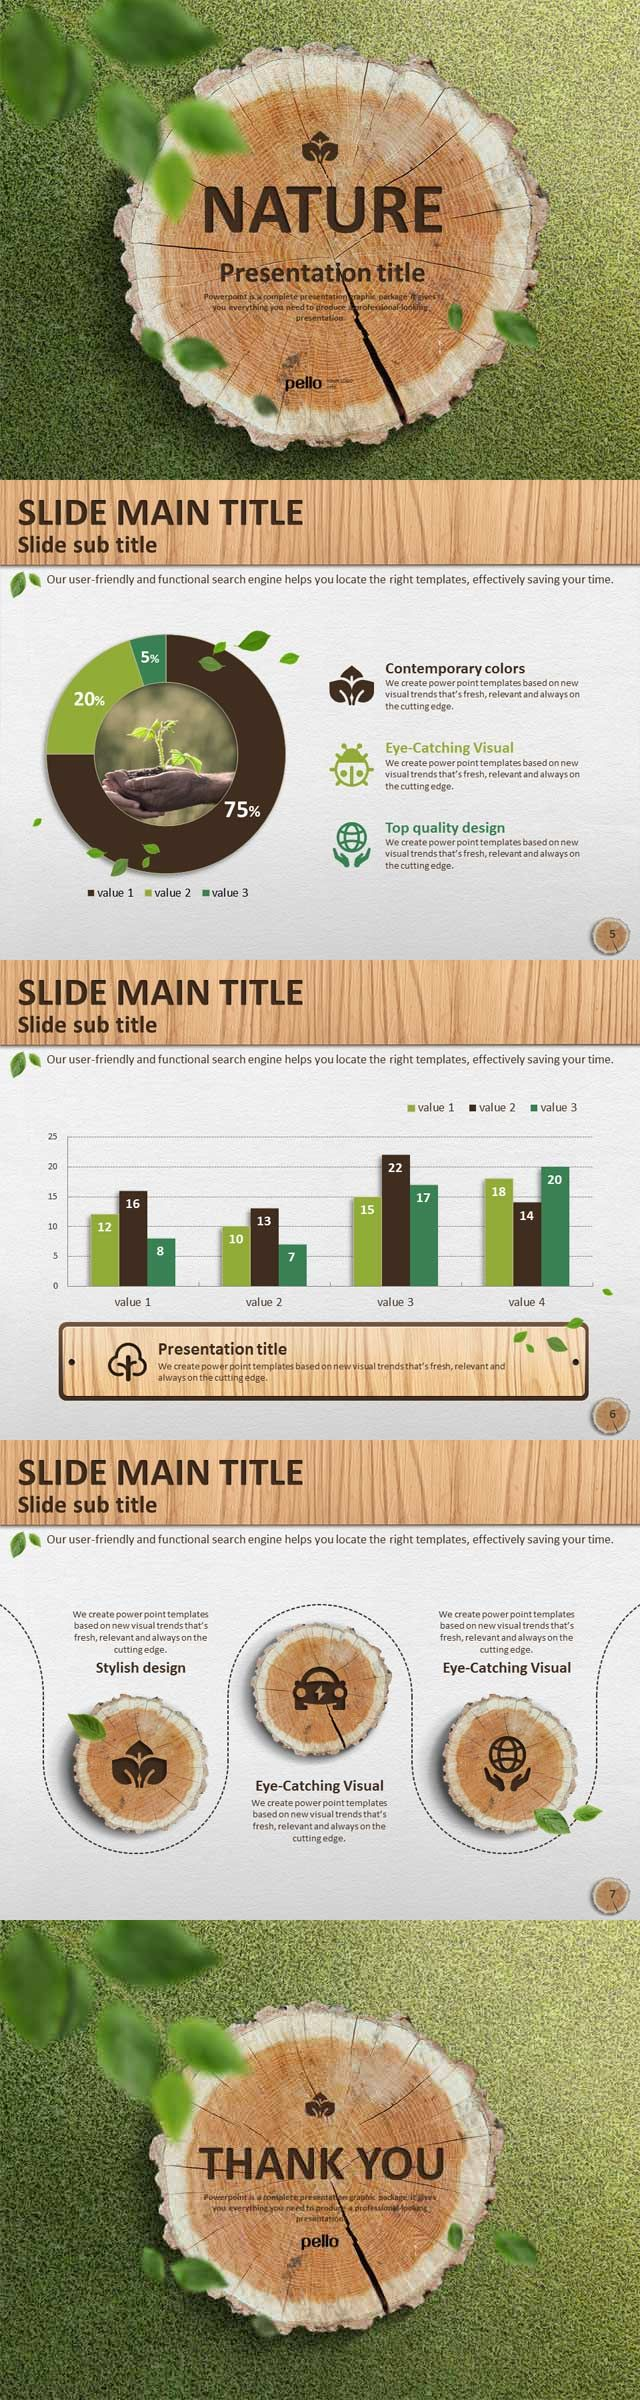 Best 25 template powerpoint 2007 ideas on pinterest powerpoint feel a sense of rejuvenation with this nature themed template full hd standard 4 ppt templatemicrosoft powerpoint 2007presentation alramifo Choice Image